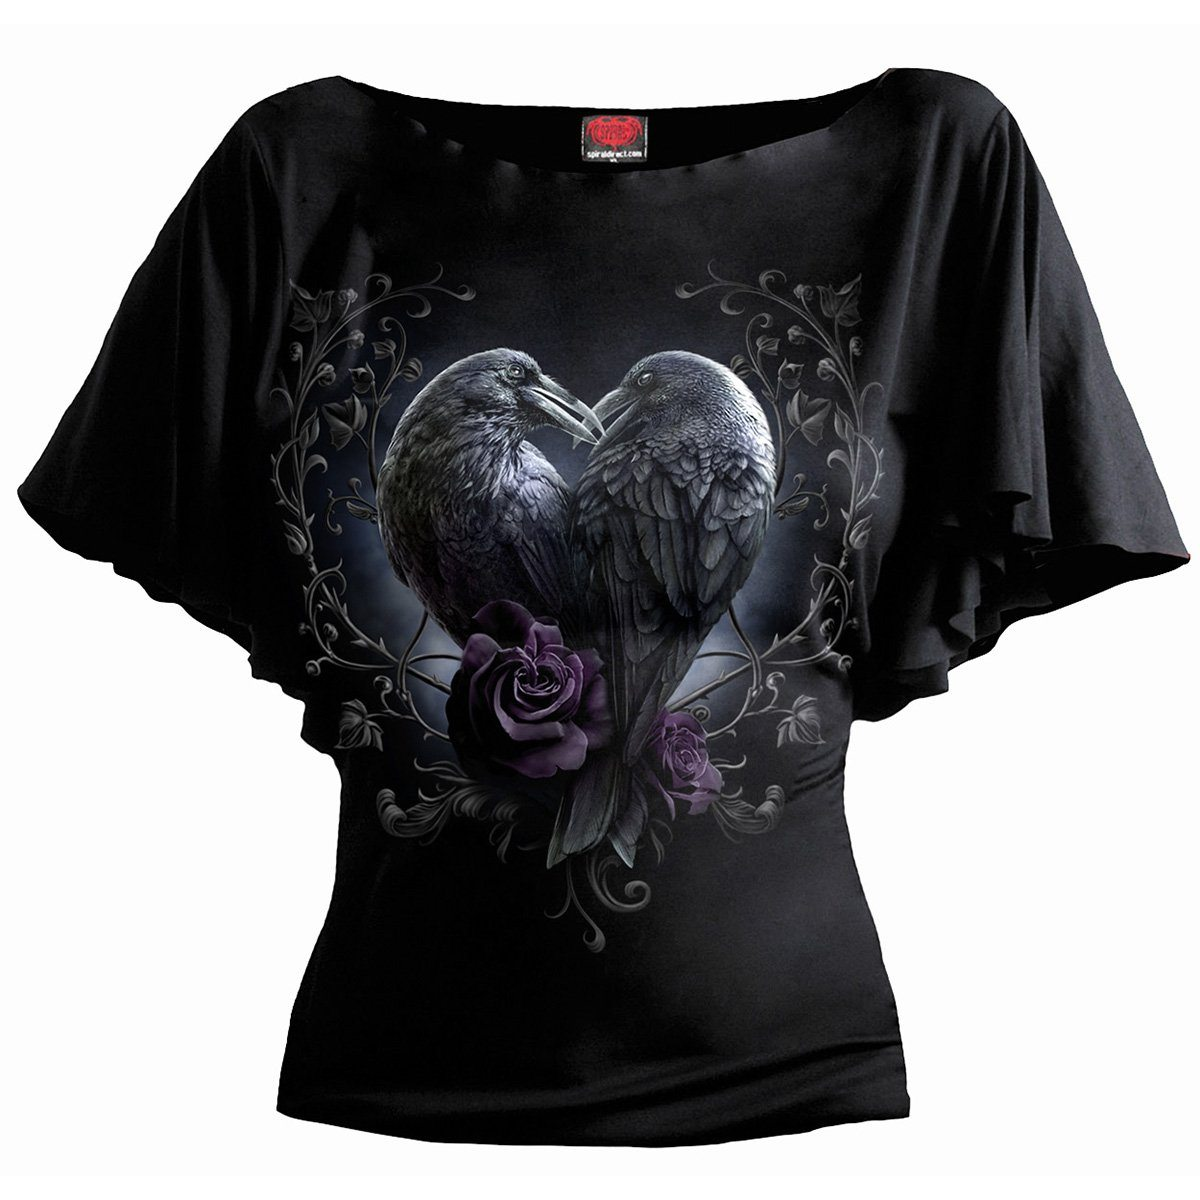 Raven Romance Women's Bat Sleeve Black Top - Rebels Depot